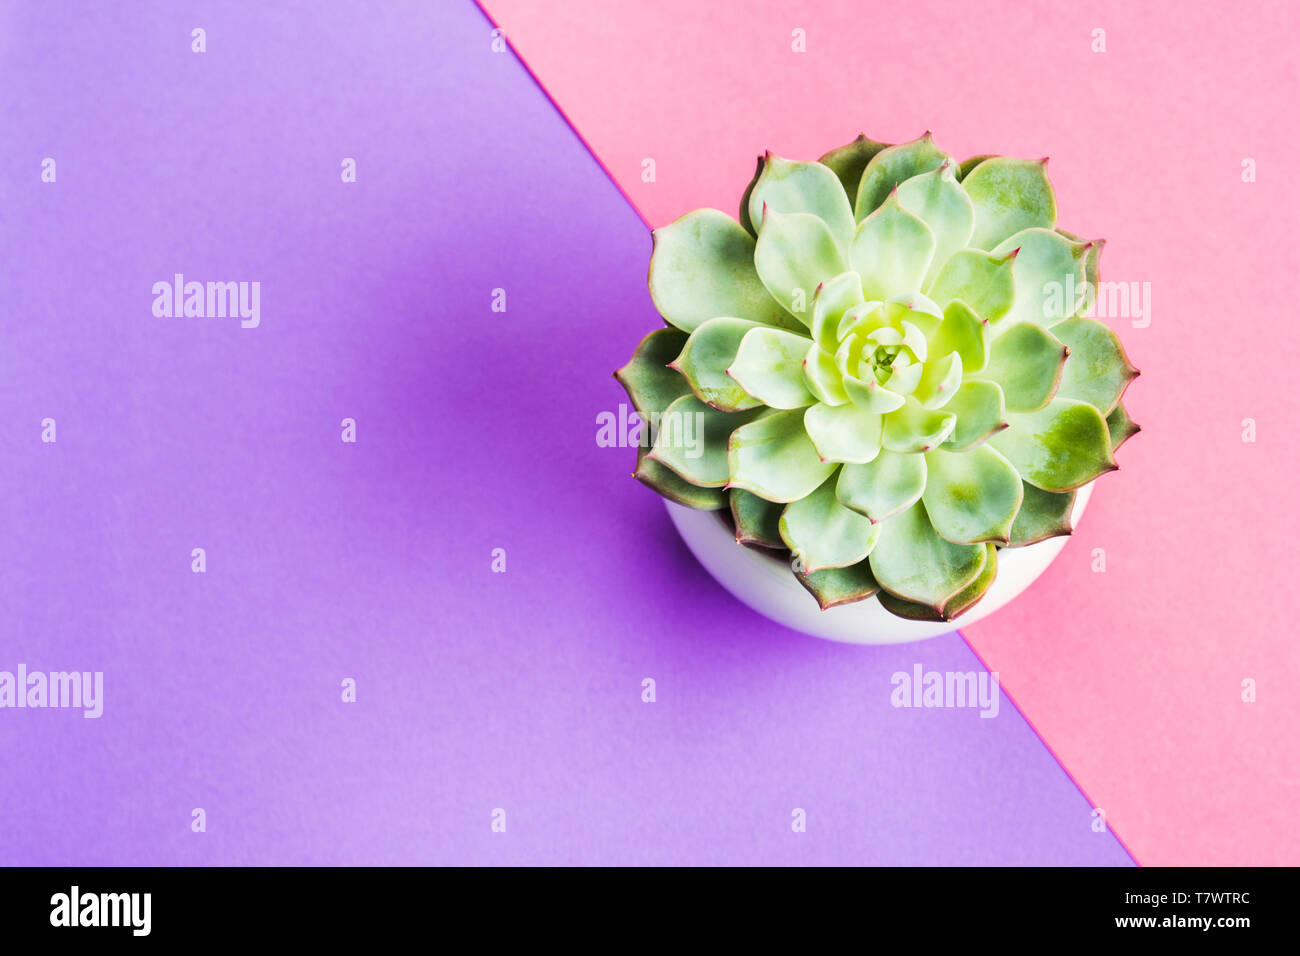 Succulent Plant In White Pot On Pink And Purple Background Flat Lay Copy Space Echeveria Chihuahuensis Stock Photo Alamy